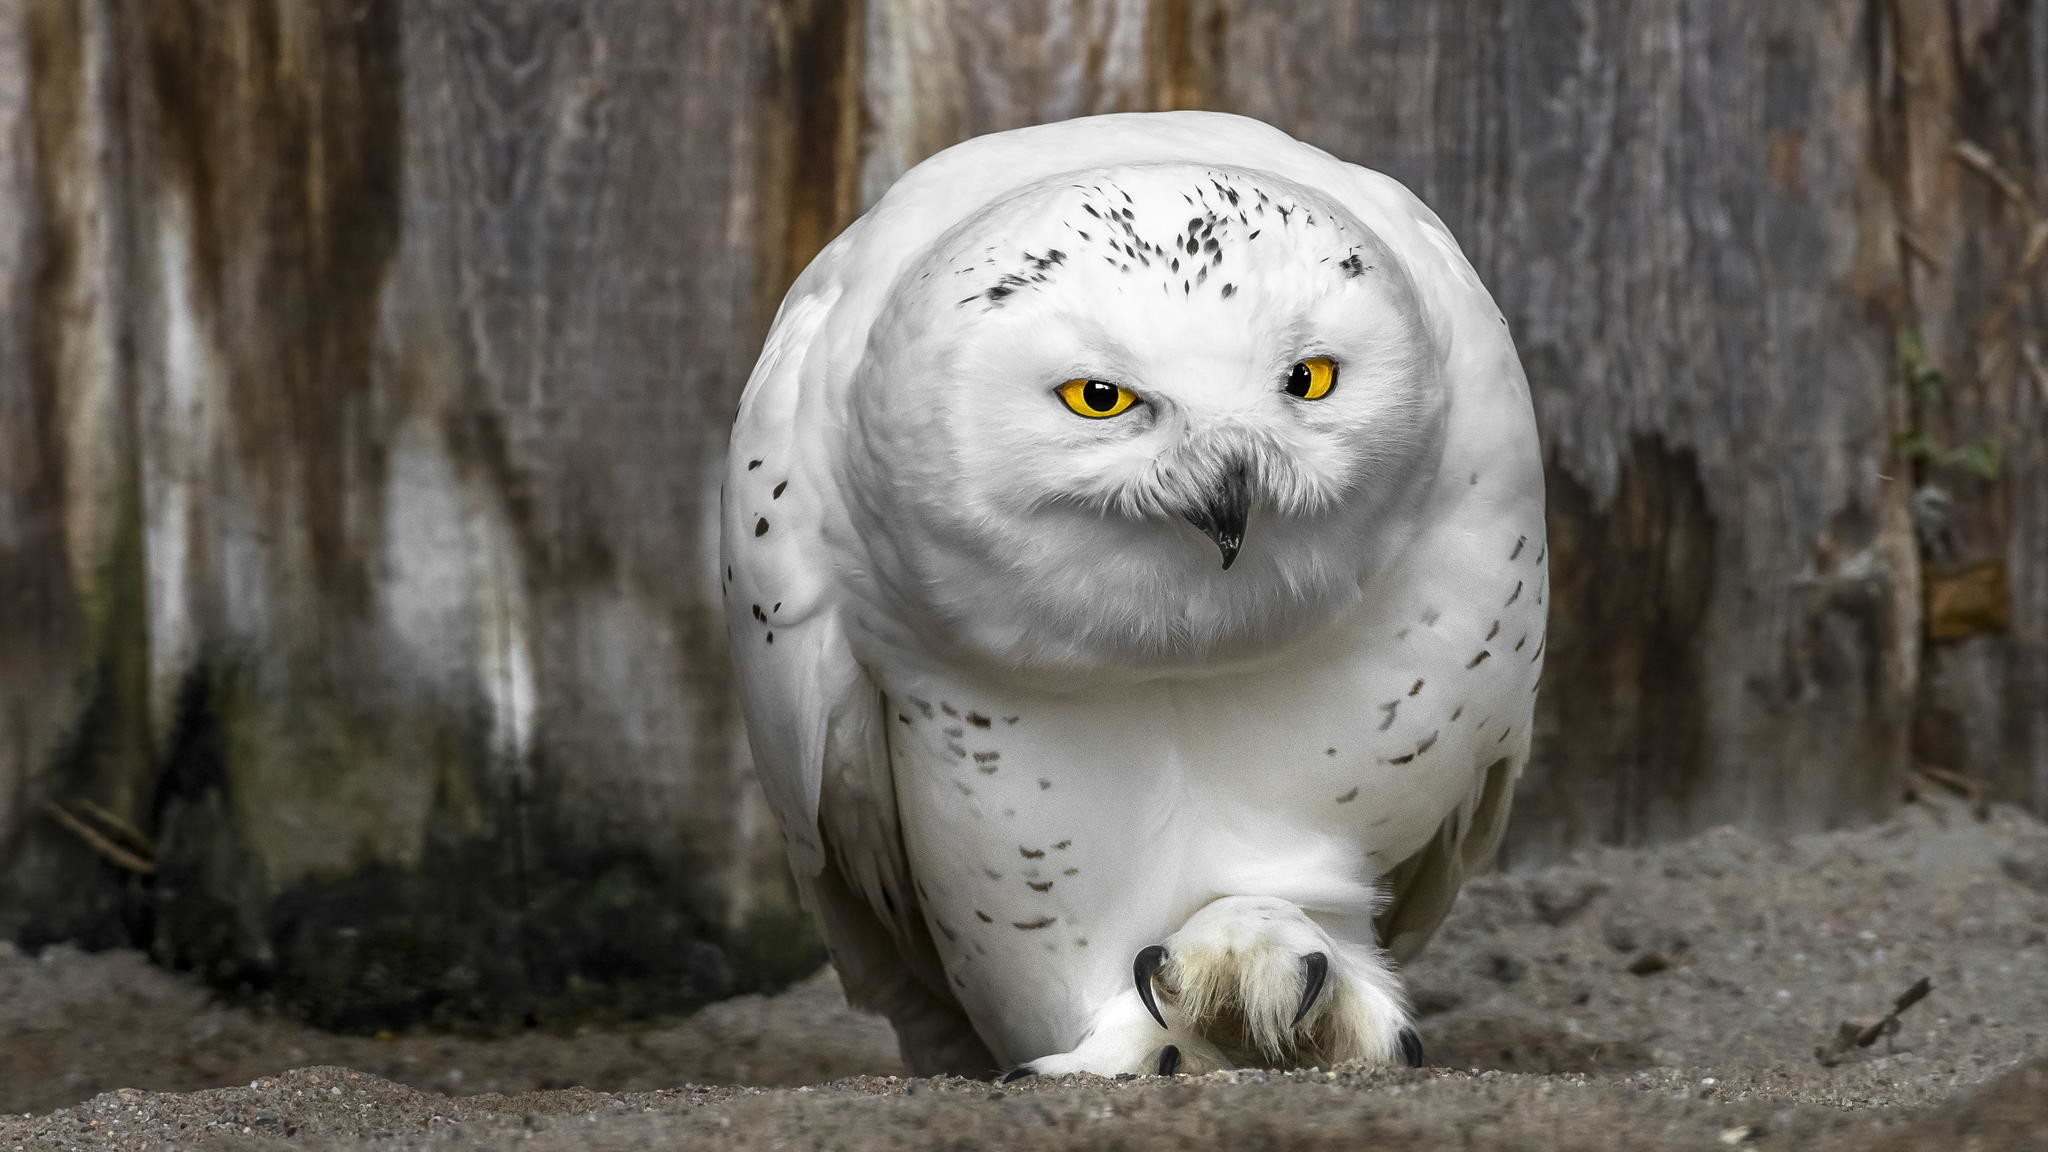 Res: 2048x1152, White Owl Pictures